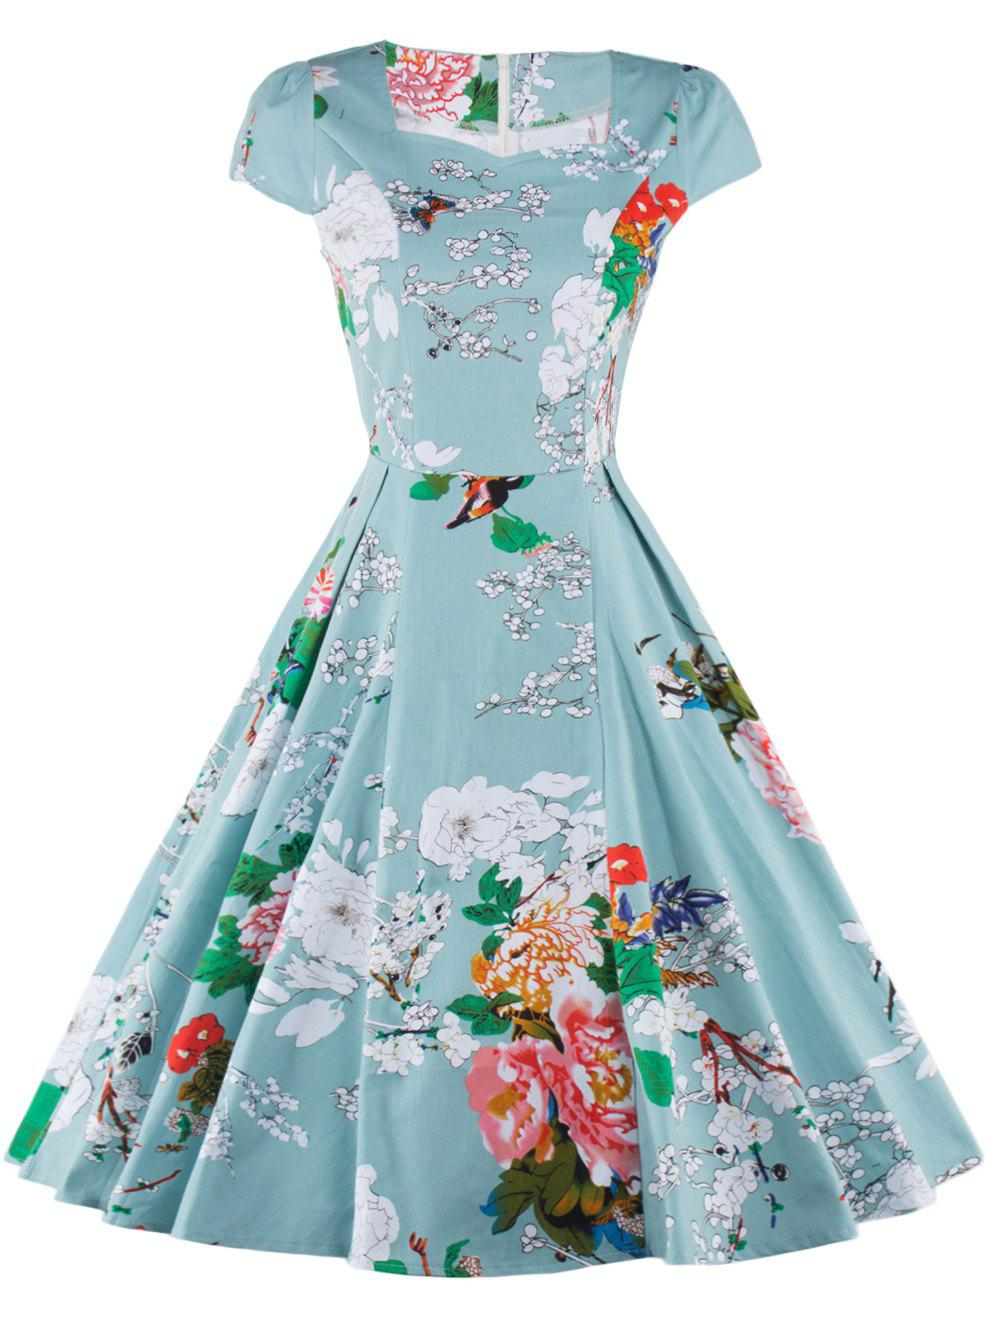 Retro Floral Print Ruffled Dress For Women - LIGHT GREEN 2XL